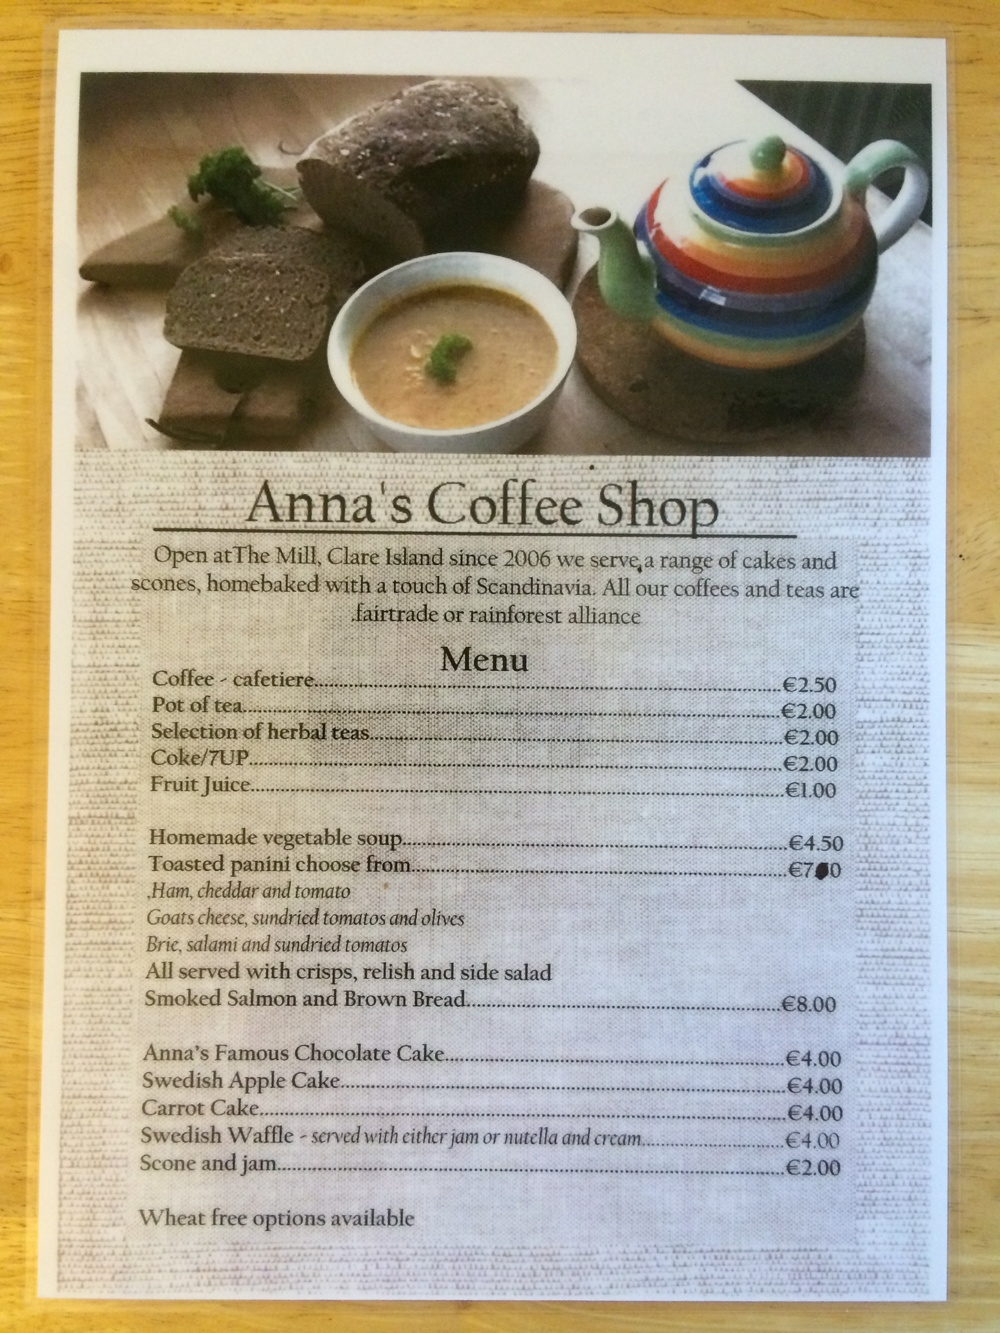 Anna's Coffee Shop